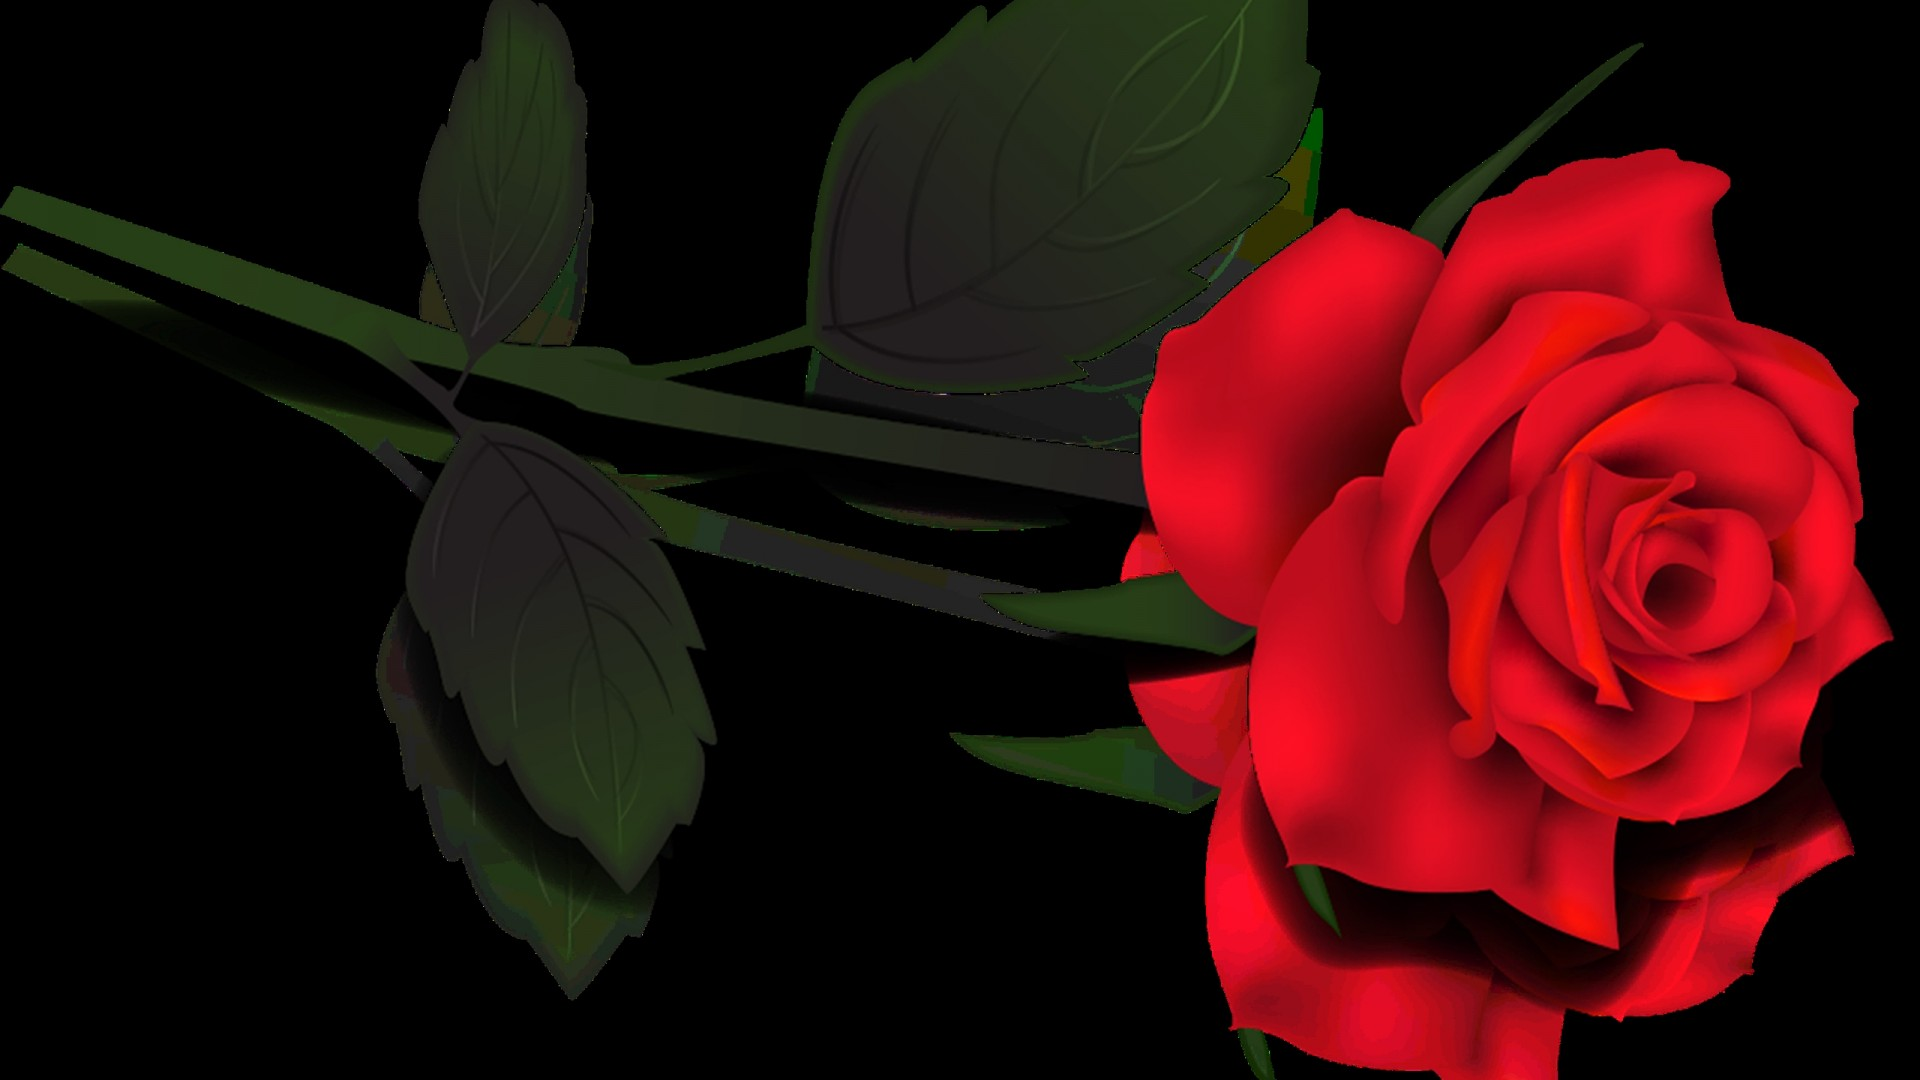 Red Clipart 1920x1080.